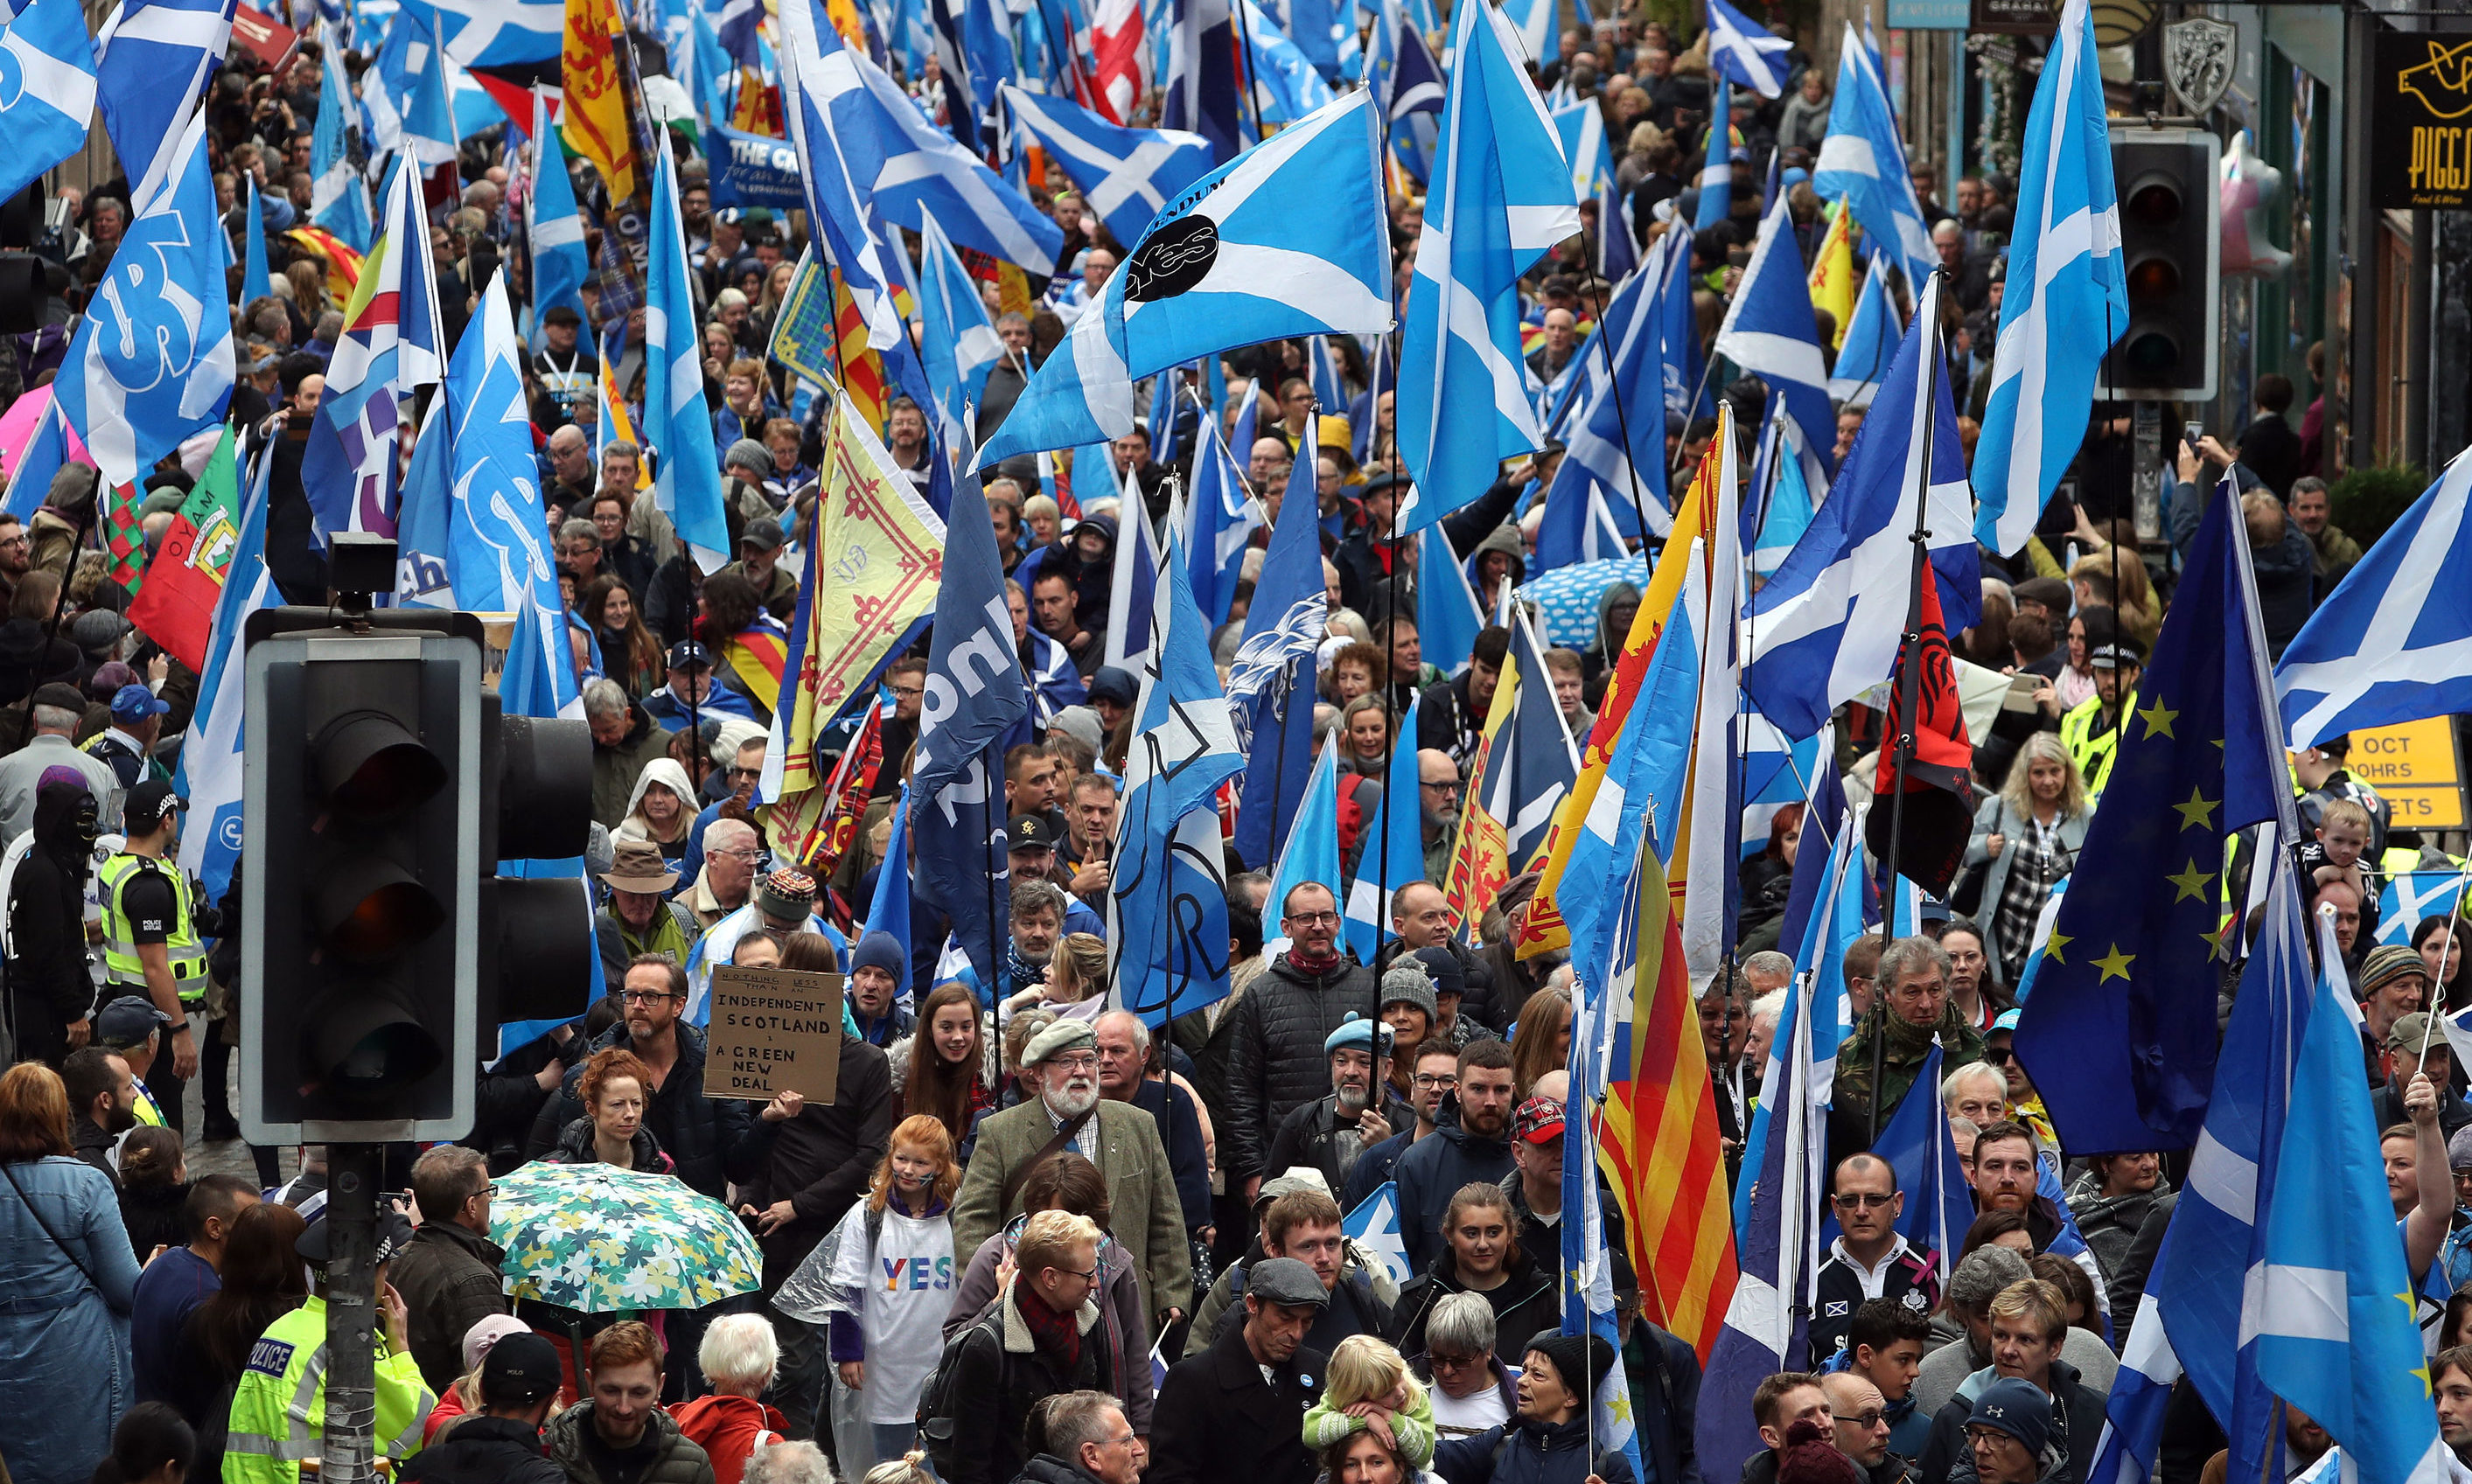 A march by supporters of Scottish independence.